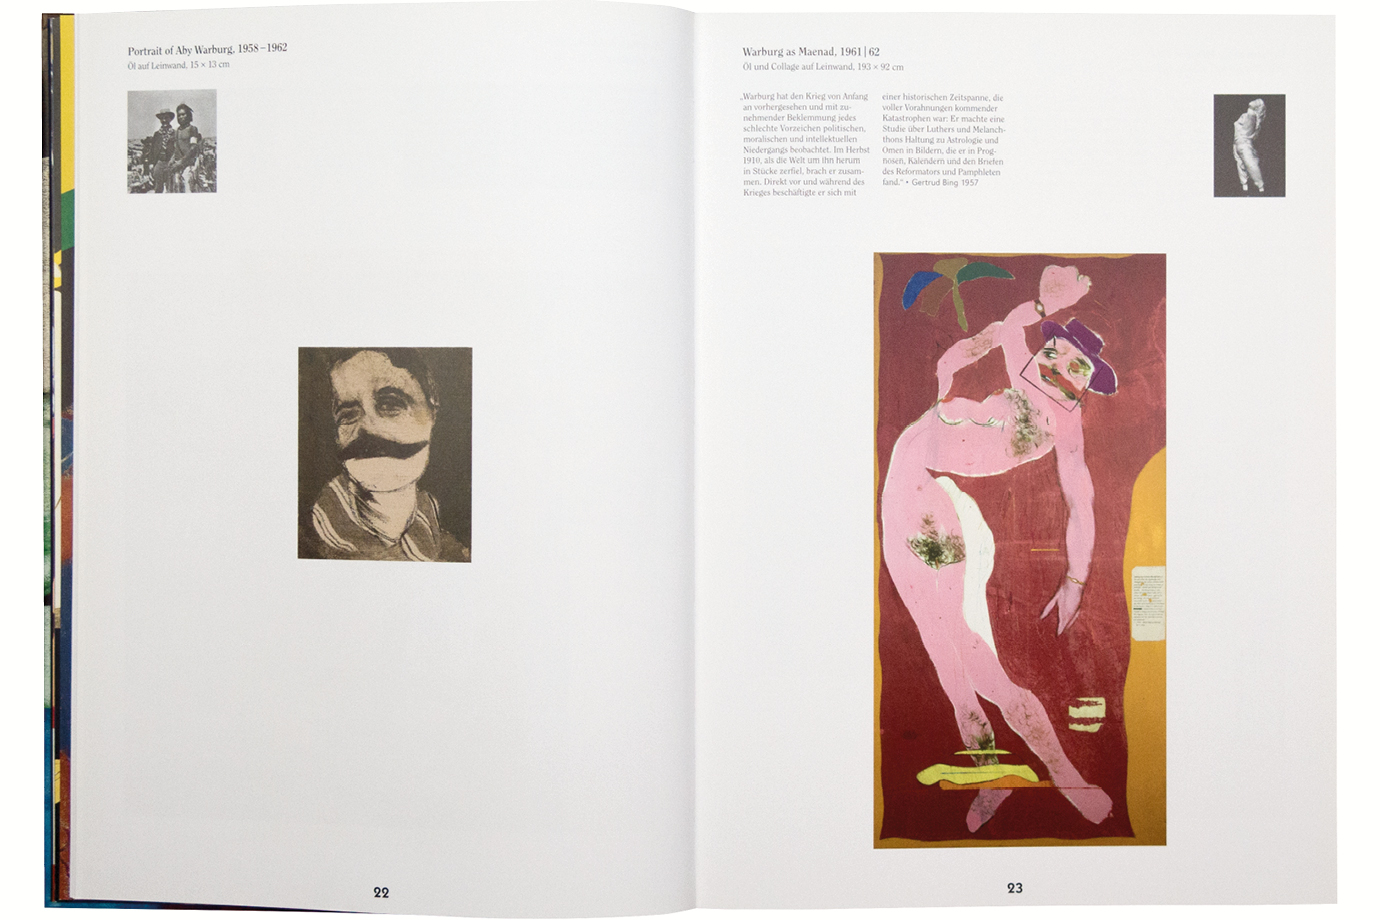 http://e-o-t.de/wordpress/wp-content/uploads/2017/07/eot-2012-Kitaj-Book-7.jpg